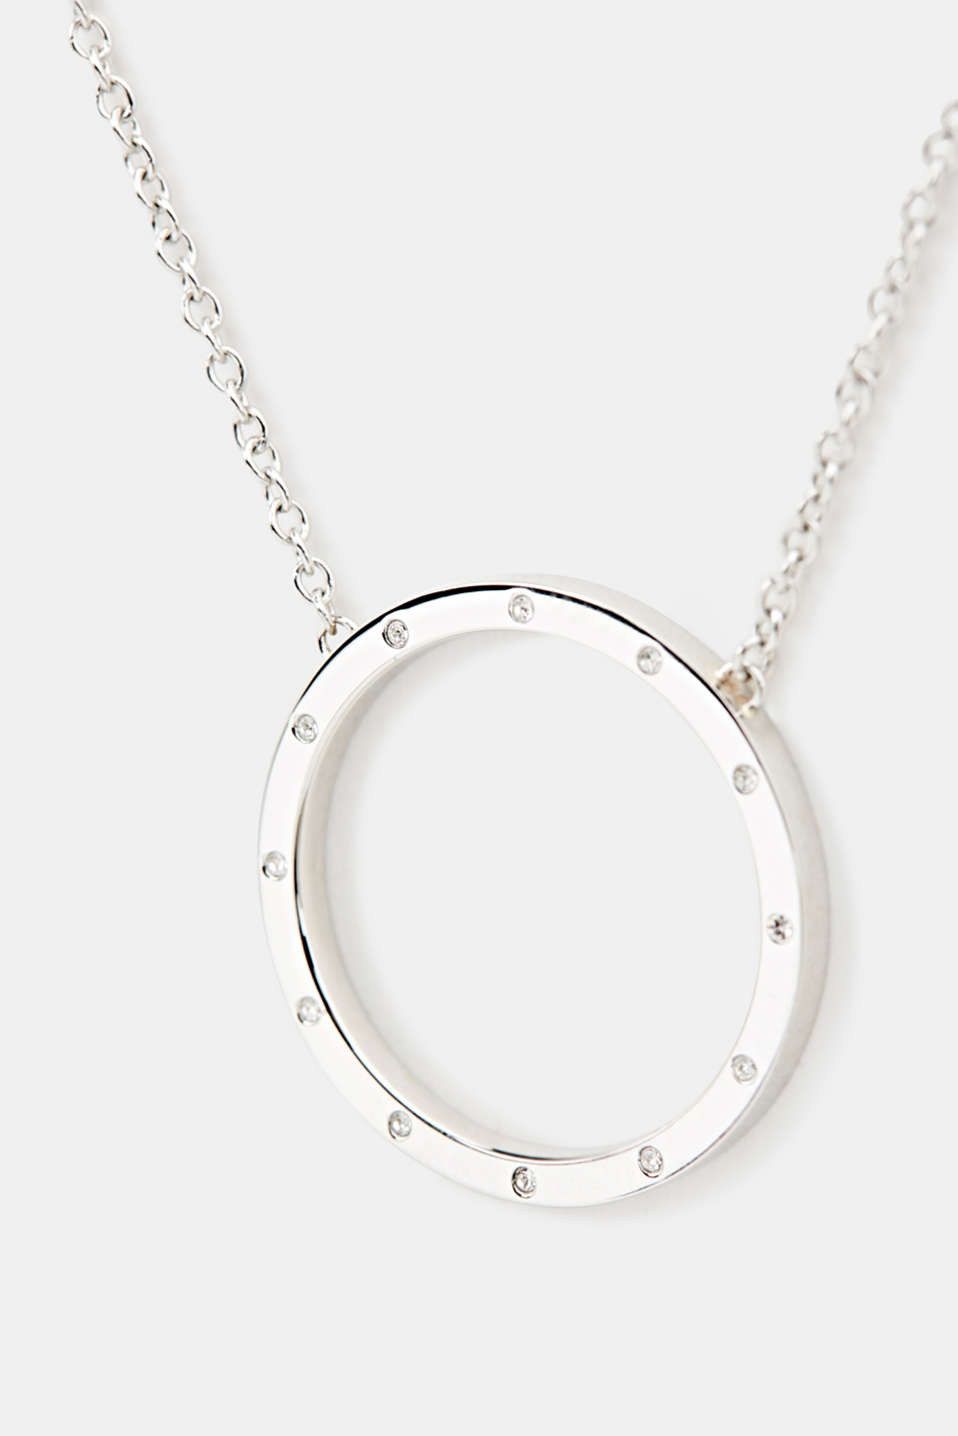 Chain with a zirconia pendant, made of stainless steel, LCSILVER, detail image number 1